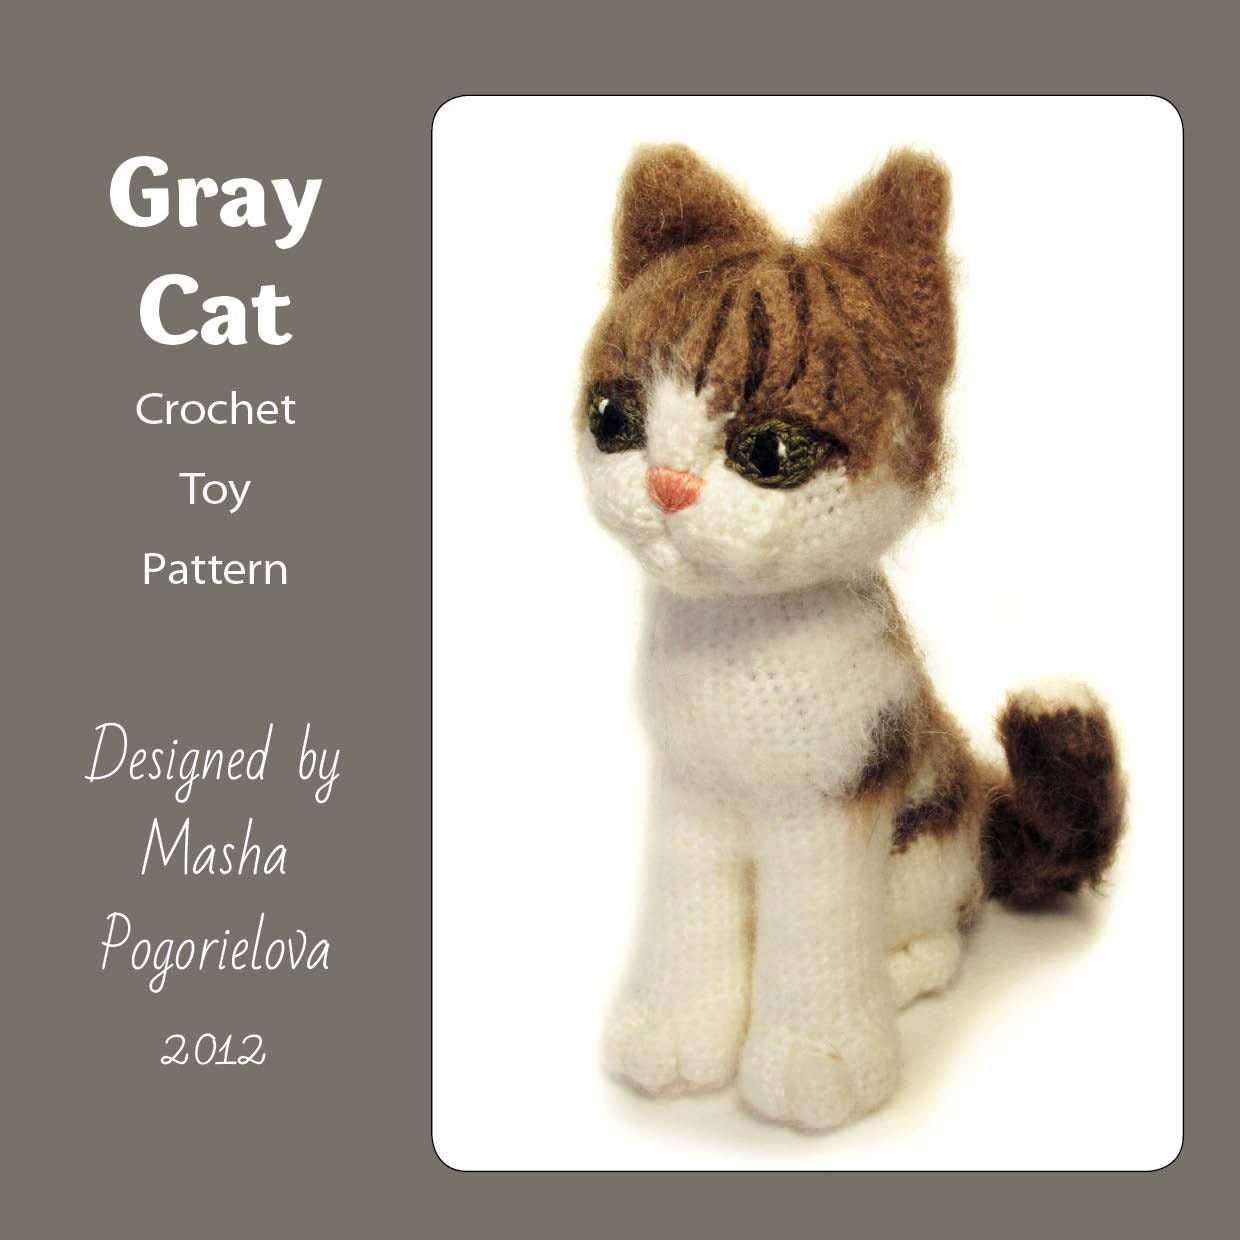 Grey Cat pdf crochet toy pattern amigurumi kitten pattern | Etsy